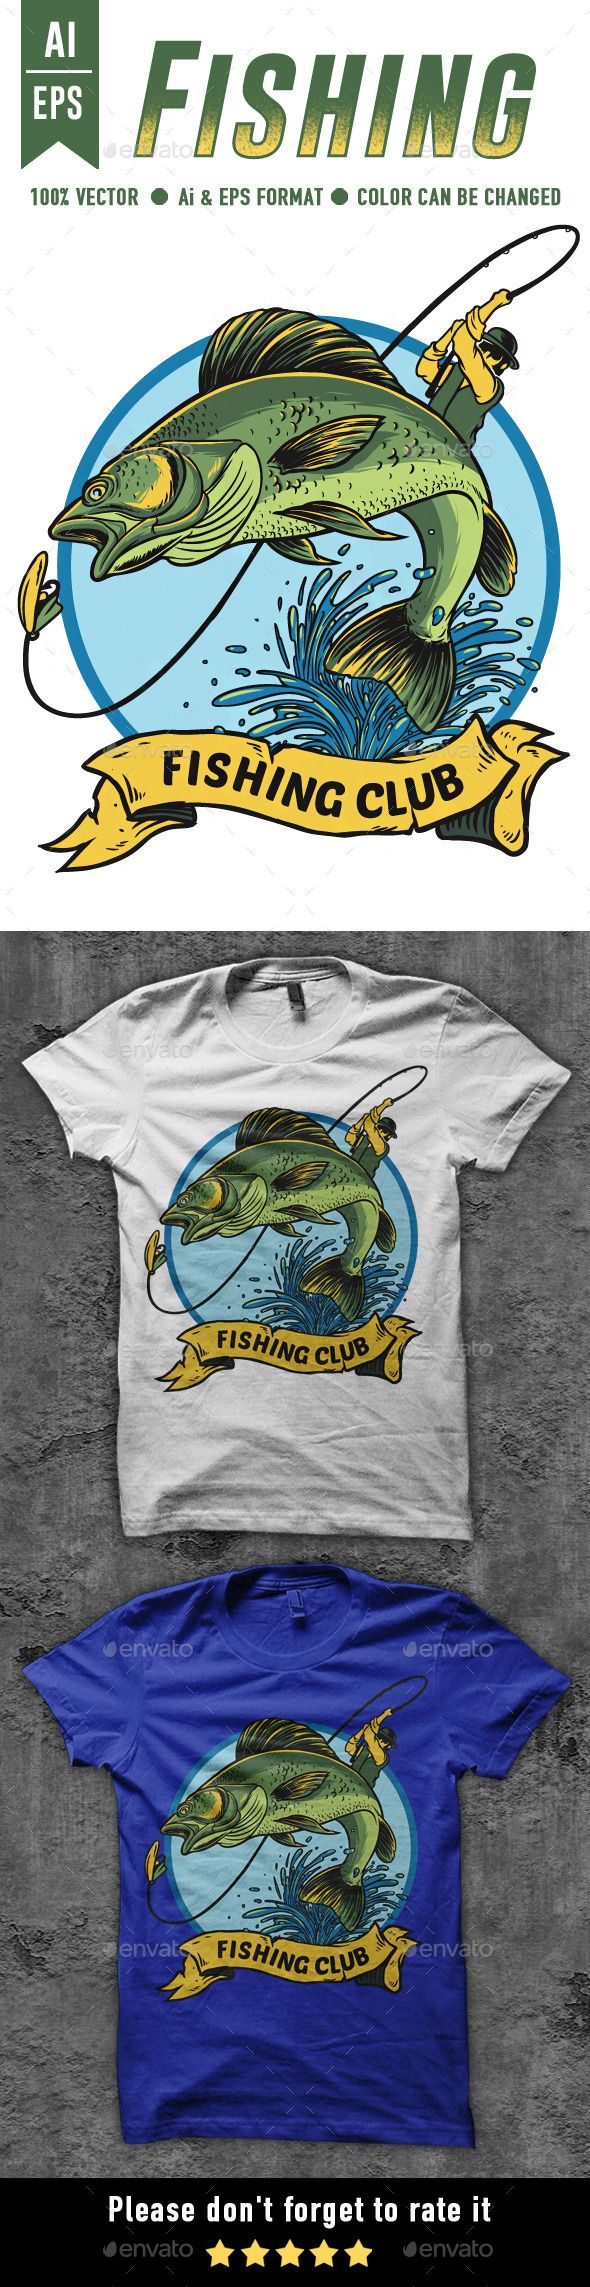 Design t shirt transfer template - Fishing T Shirt Design